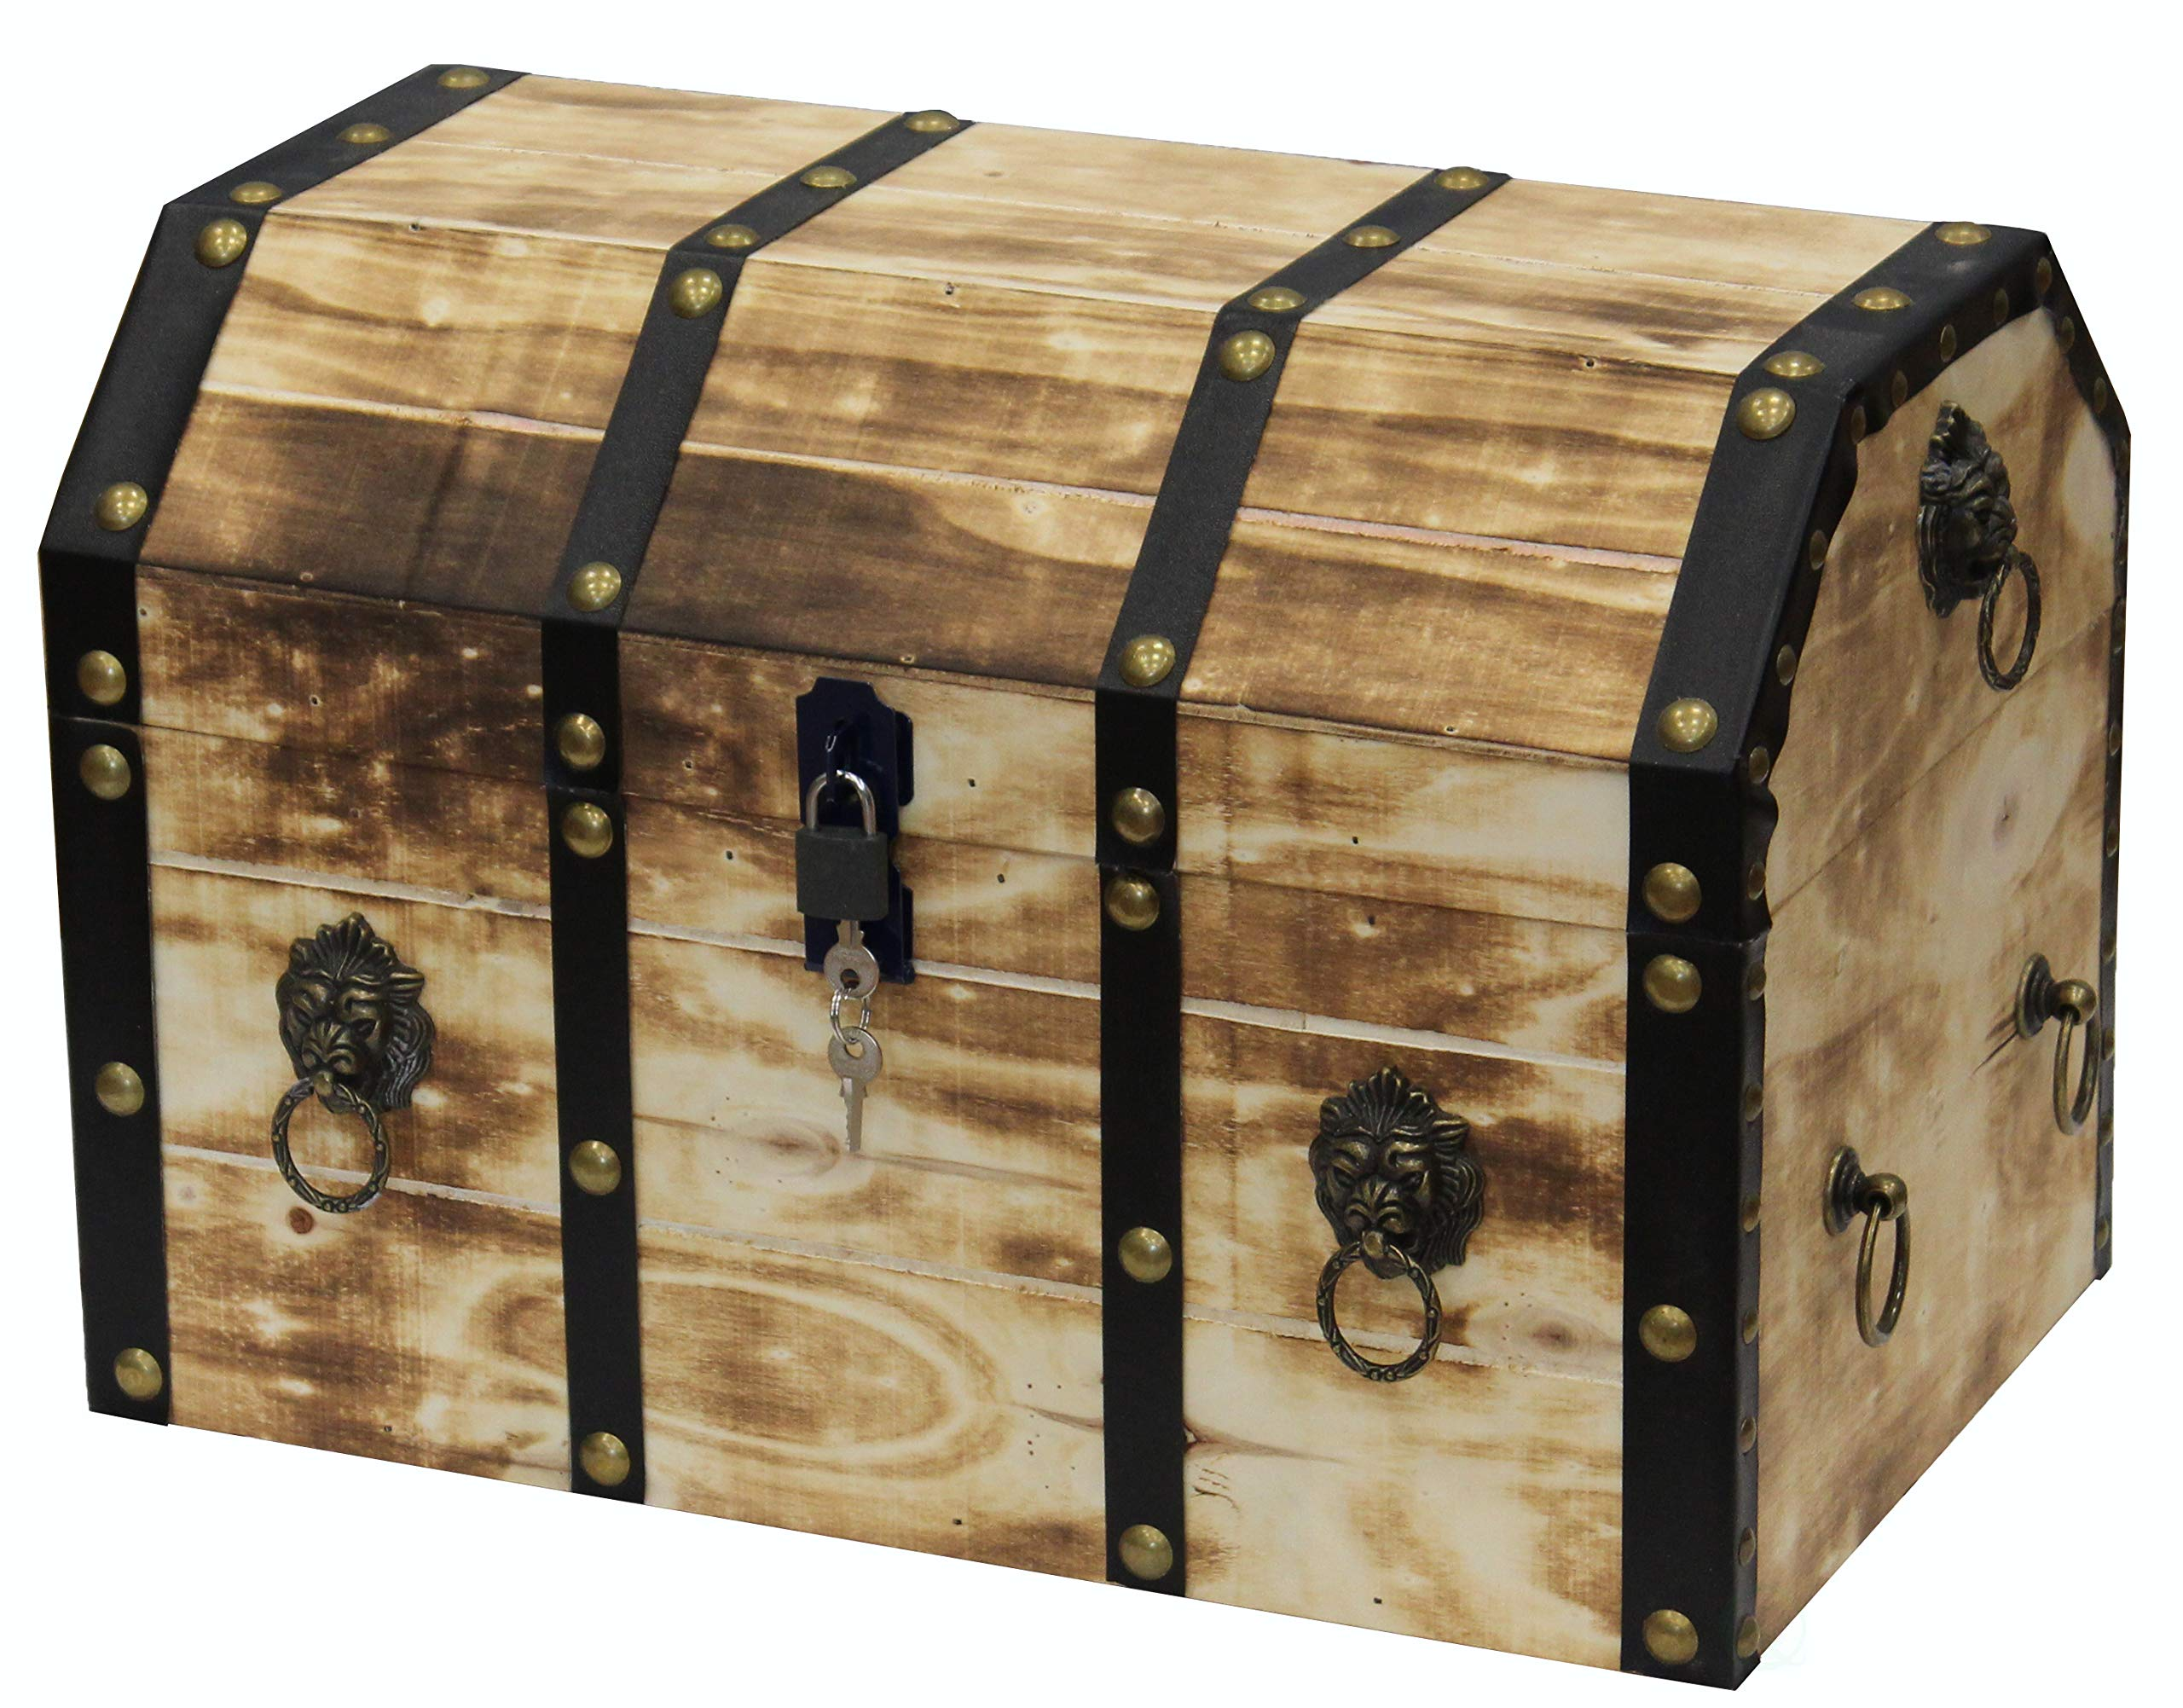 Vintiquewise Large Wooden Decorative Lion Rings Pirate Trunk with Lockable Latch and Lock, Tan